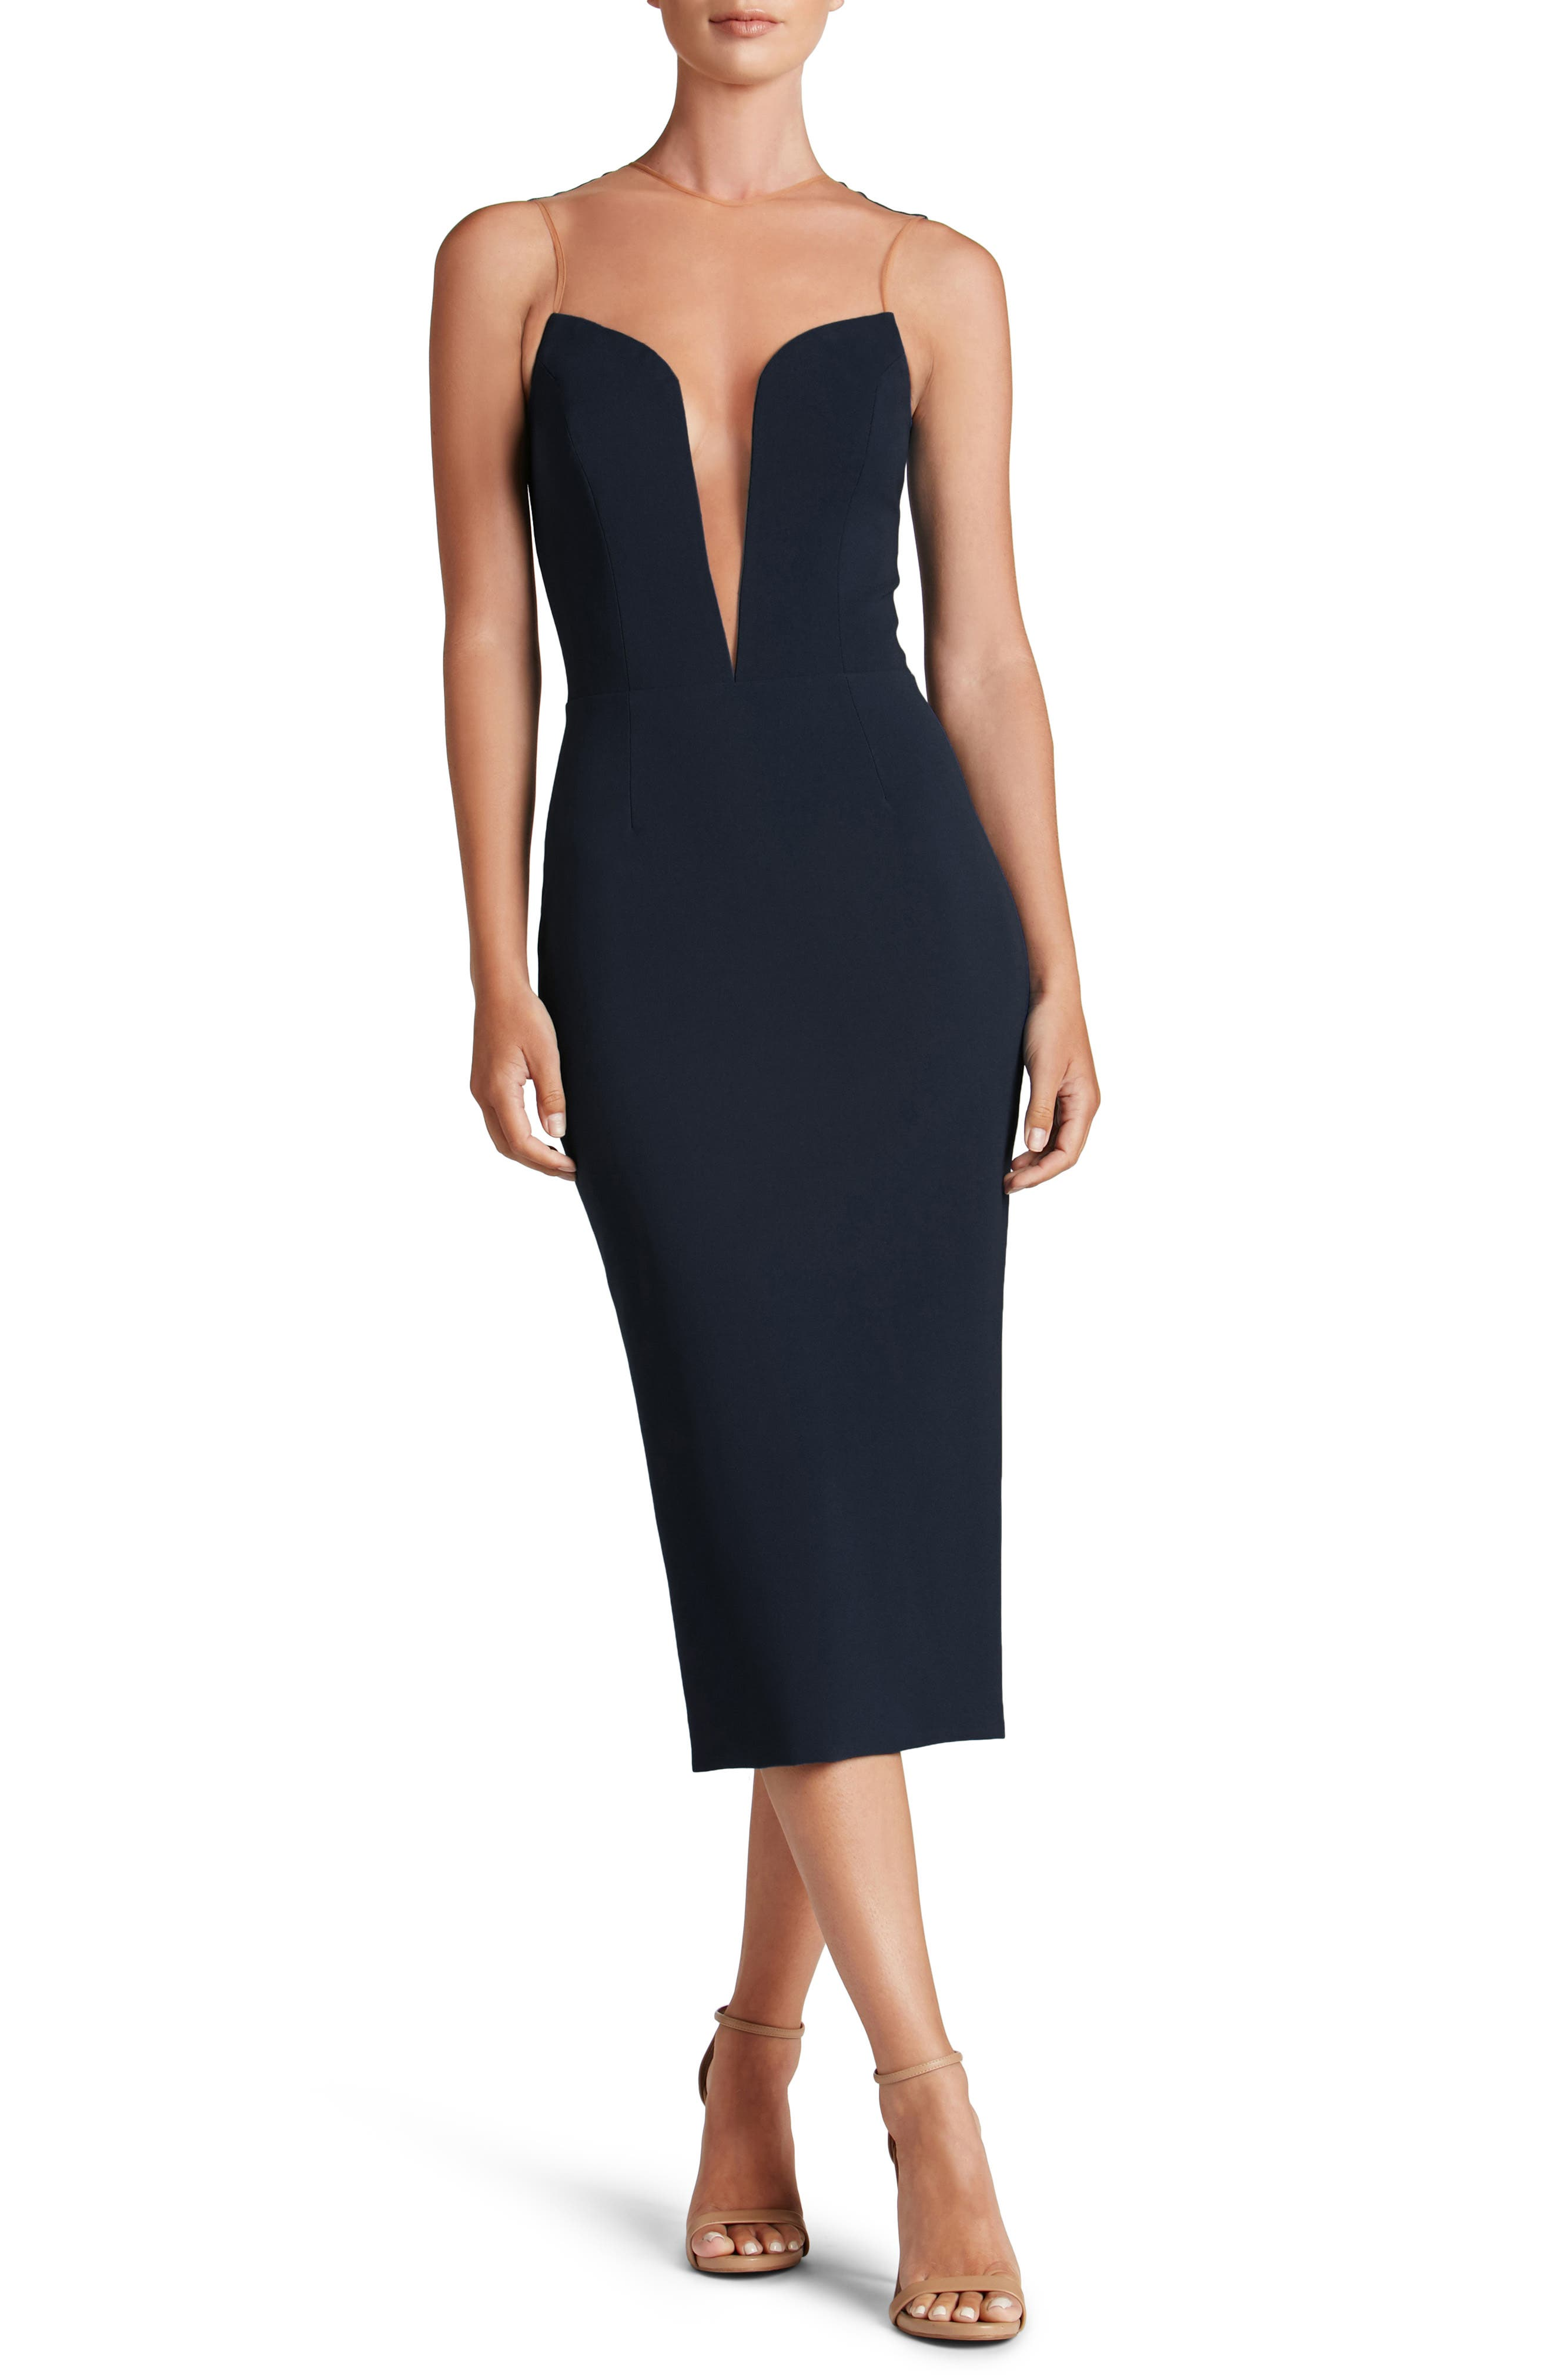 Helen Plunge Neck Midi Dress,                         Main,                         color, Midnight Blue